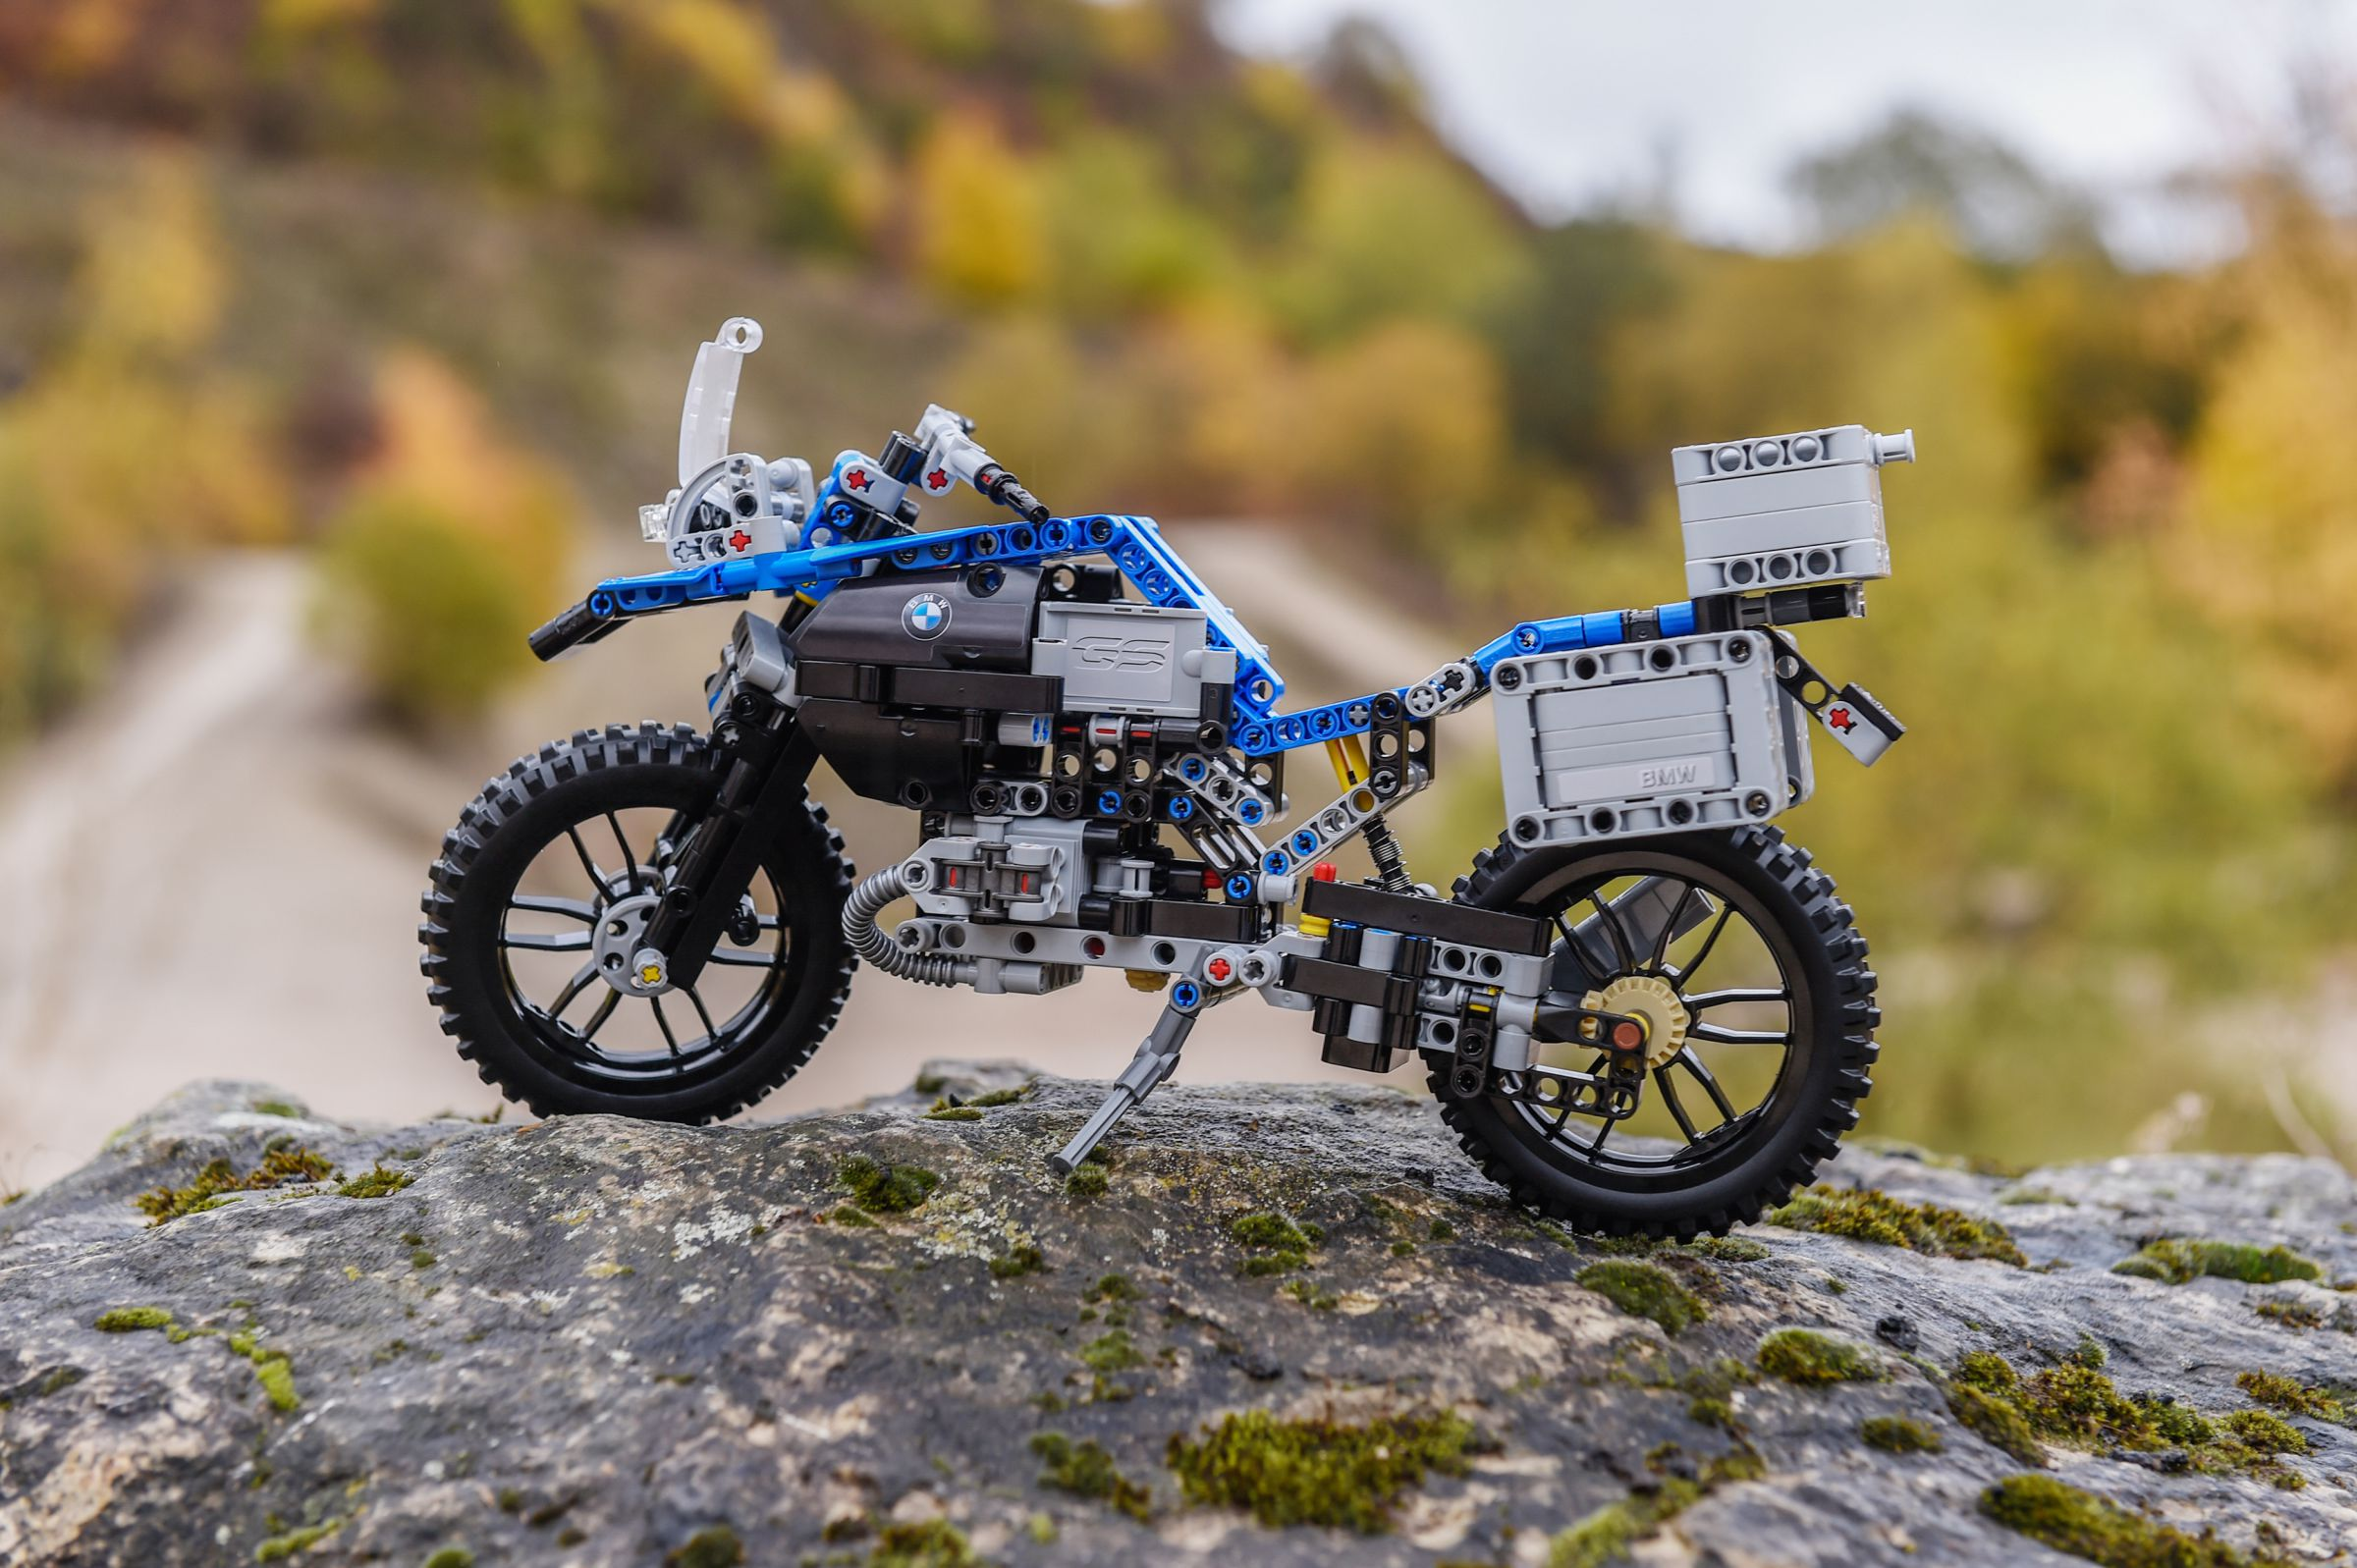 LEGO Technic 42063 BMW R 1200 GS Adventure LEGO_42063_bmw-R-1200-GS-Adventure_img6.jpg